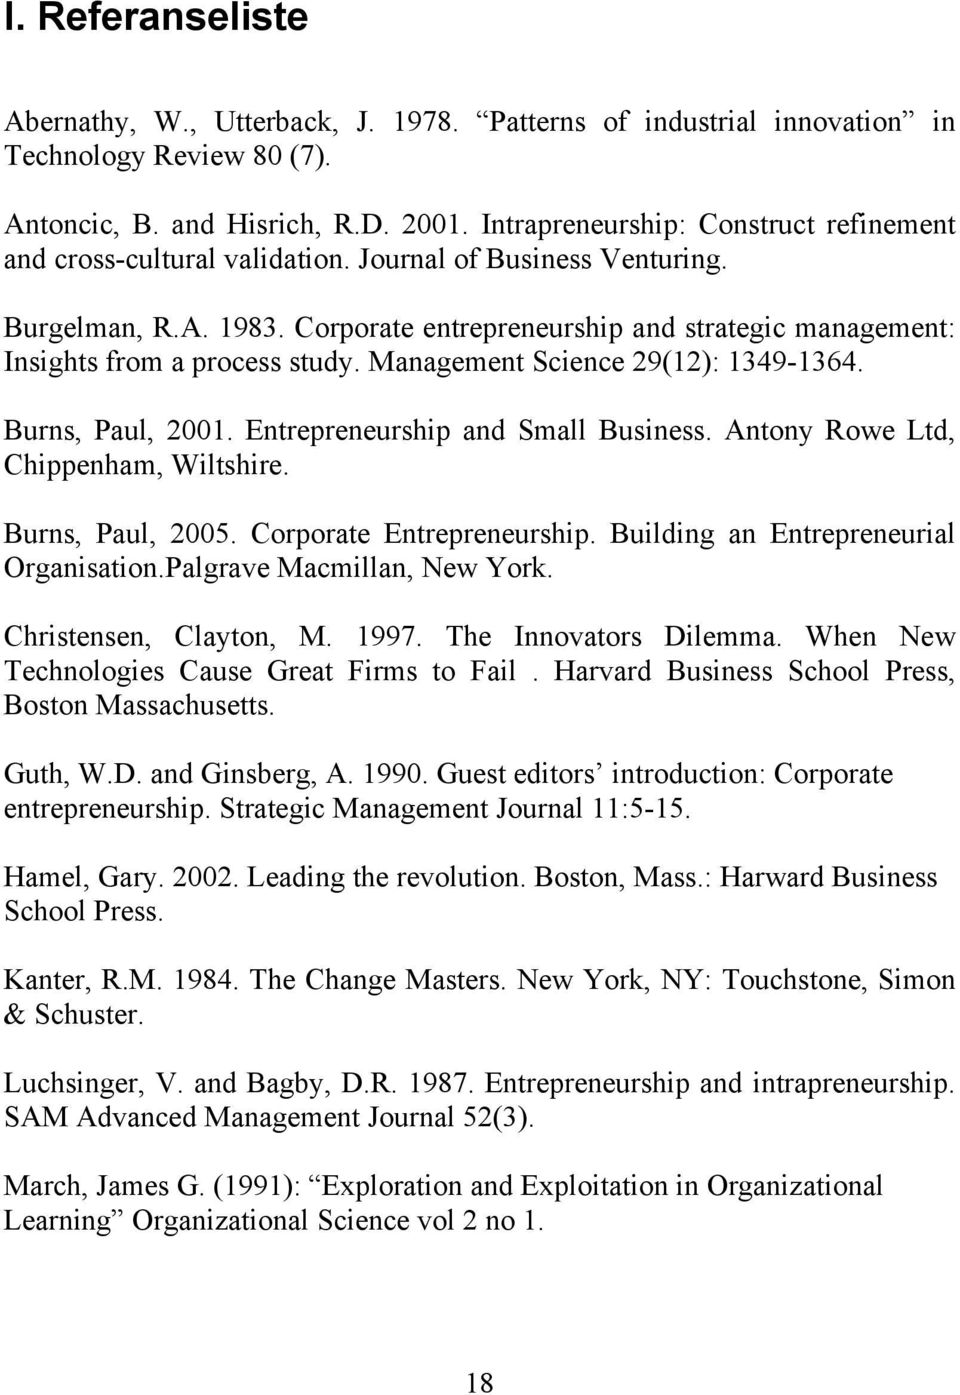 Corporate entrepreneurship and strategic management: Insights from a process study. Management Science 29(12): 1349-1364. Burns, Paul, 2001. Entrepreneurship and Small Business.